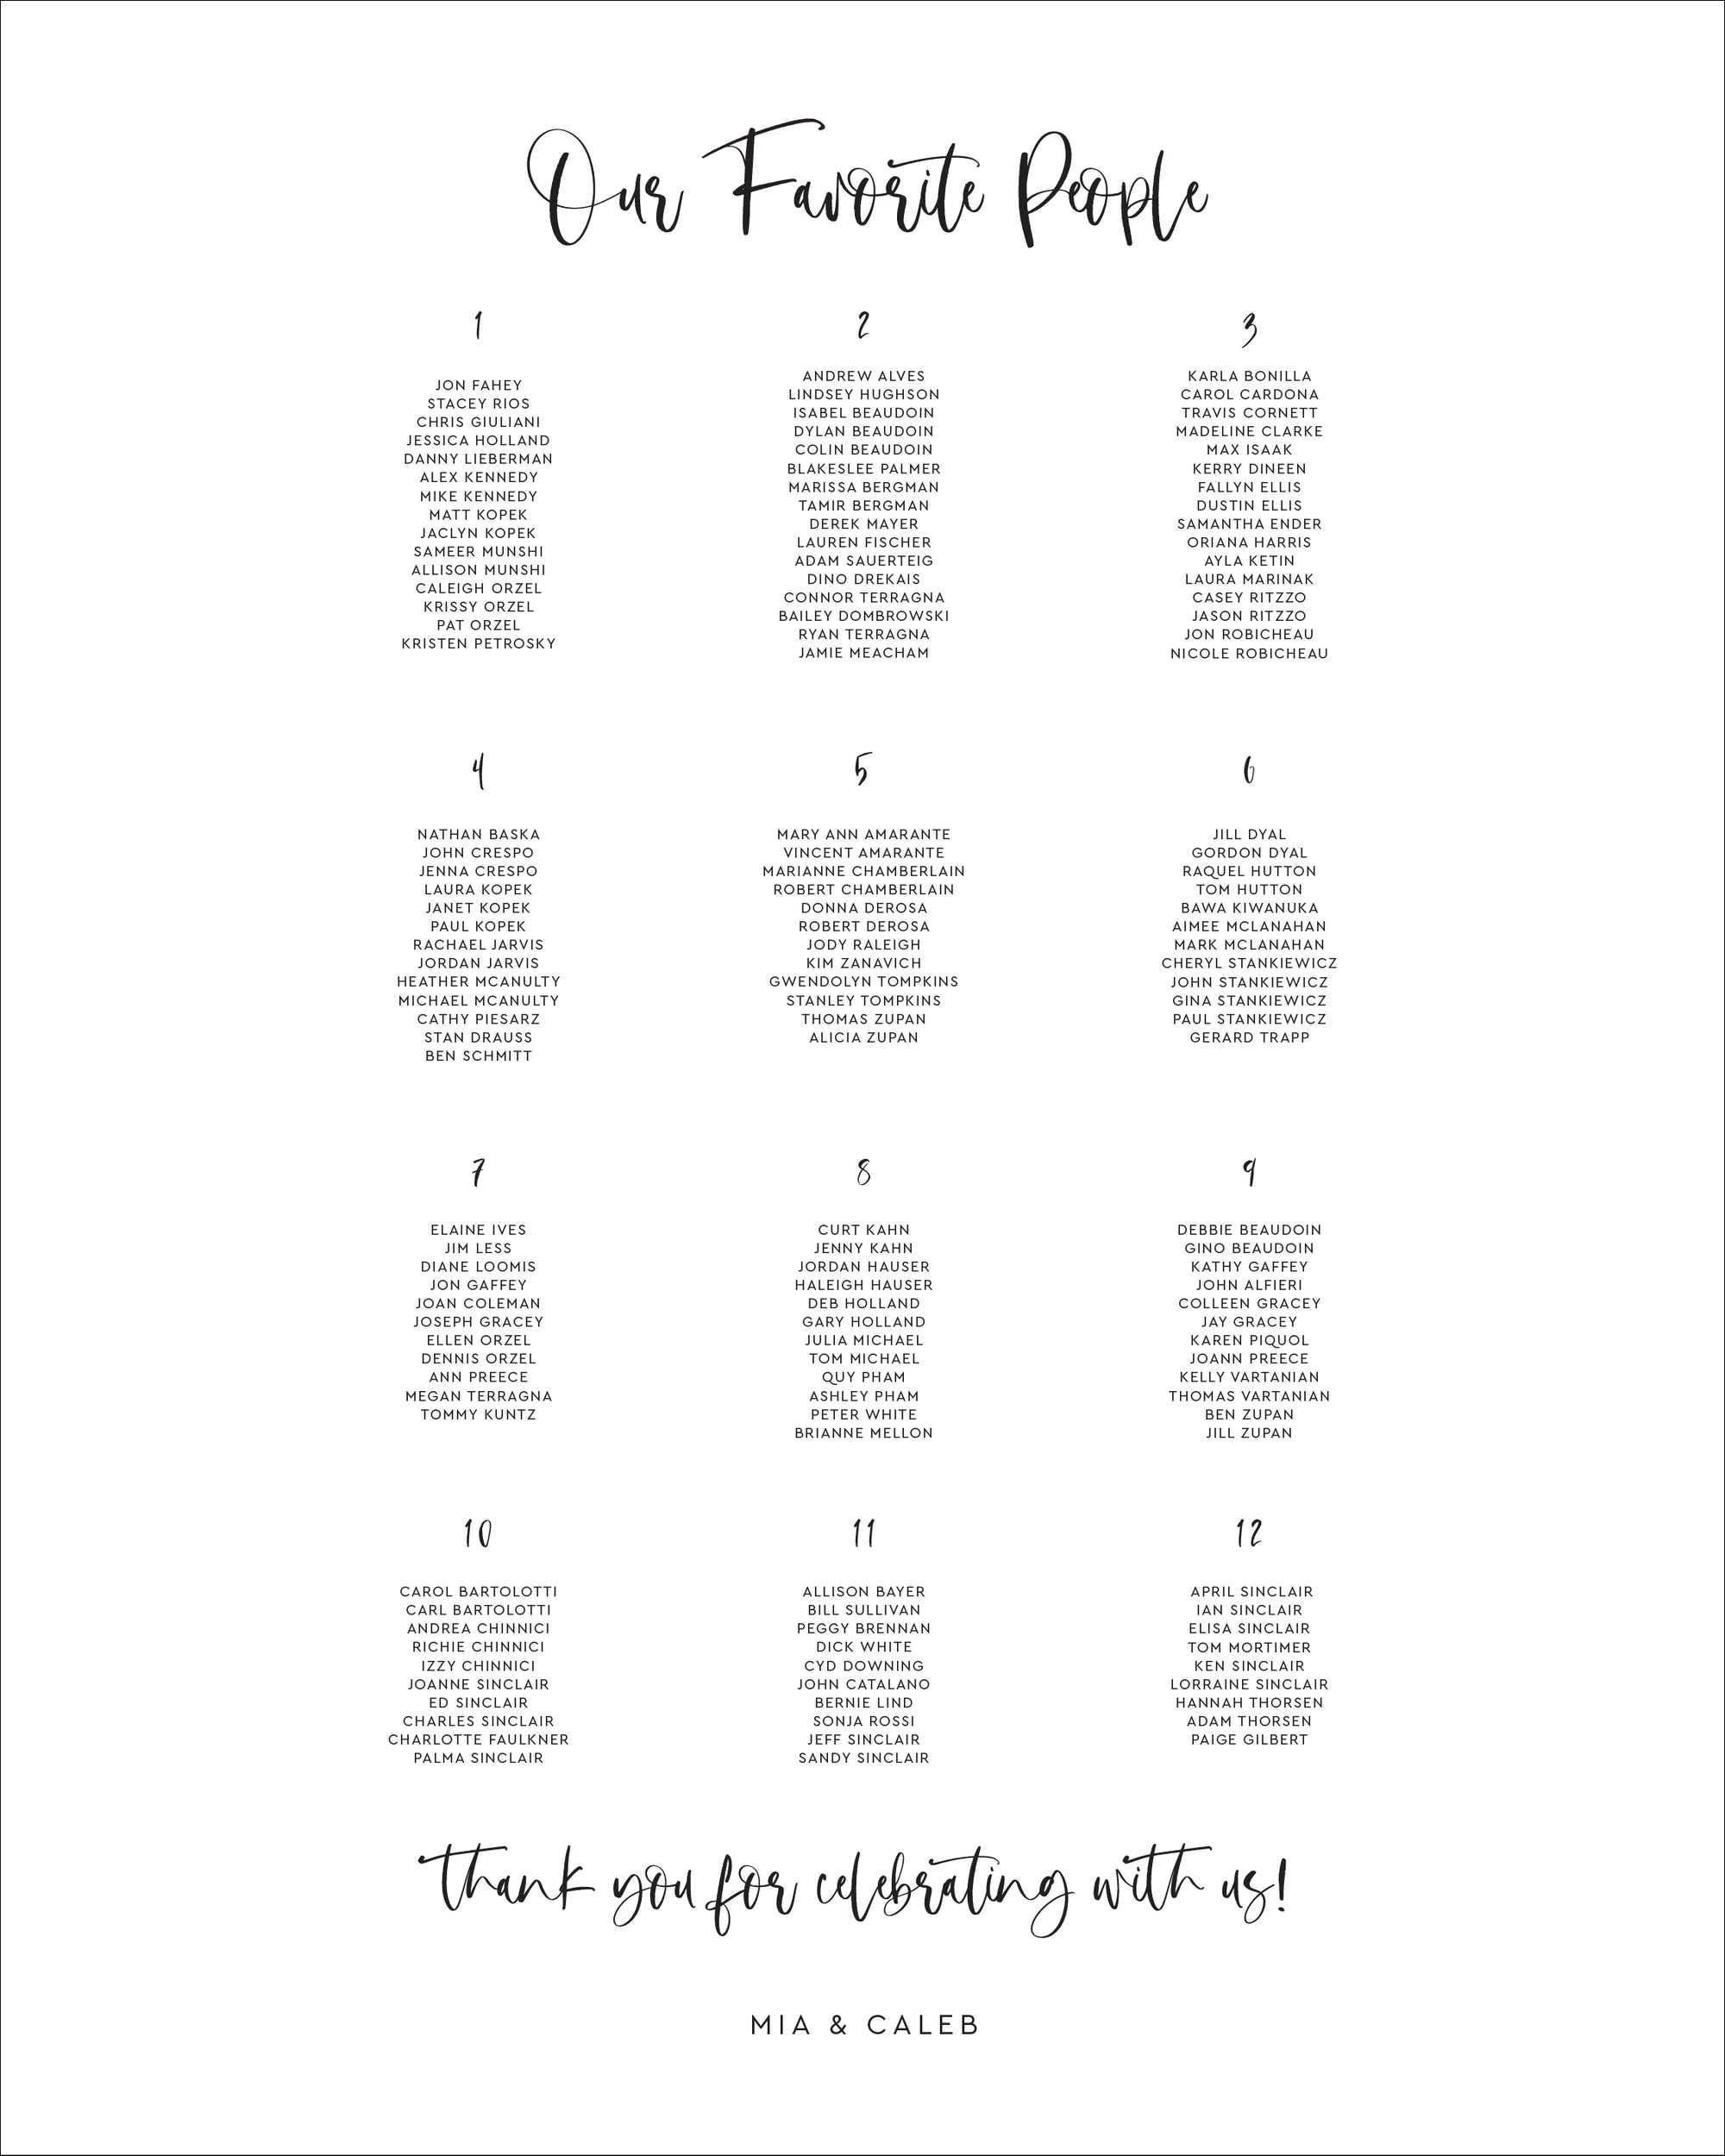 Find Your Seat Wedding Sign | The Mia